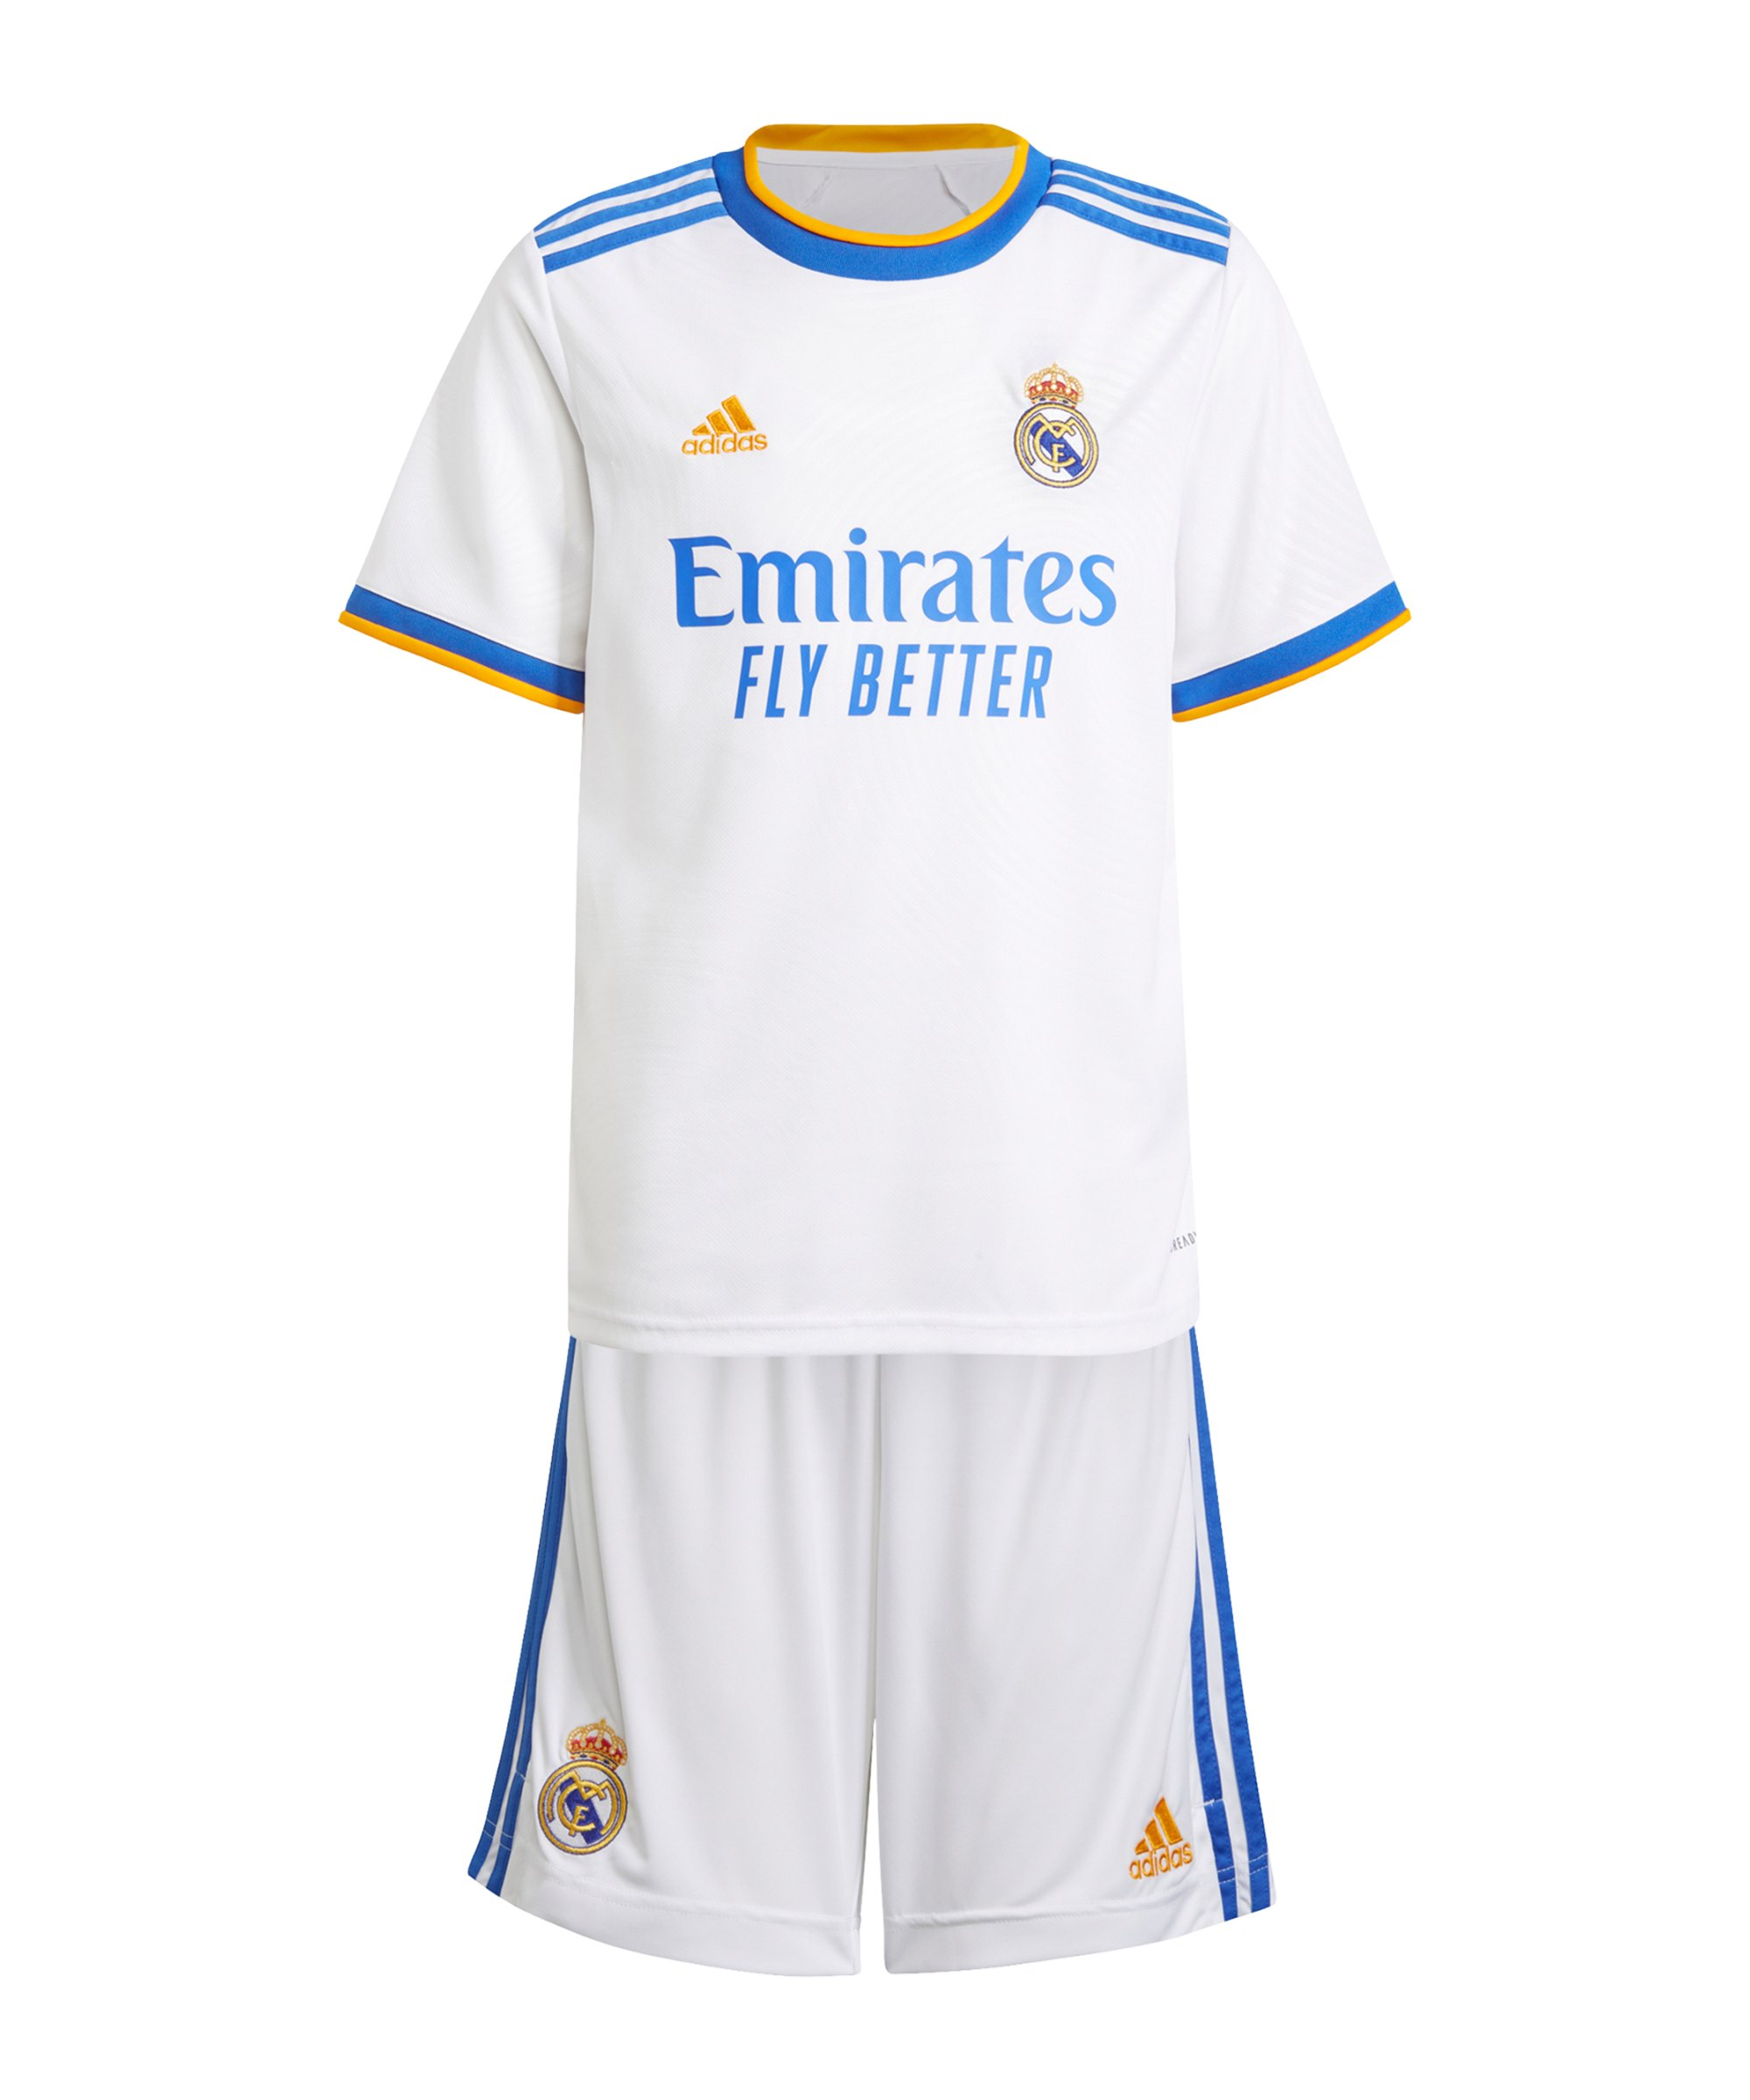 adidas Real Madrid Kinder Kit Home 2021/2022 Weiss - weiss